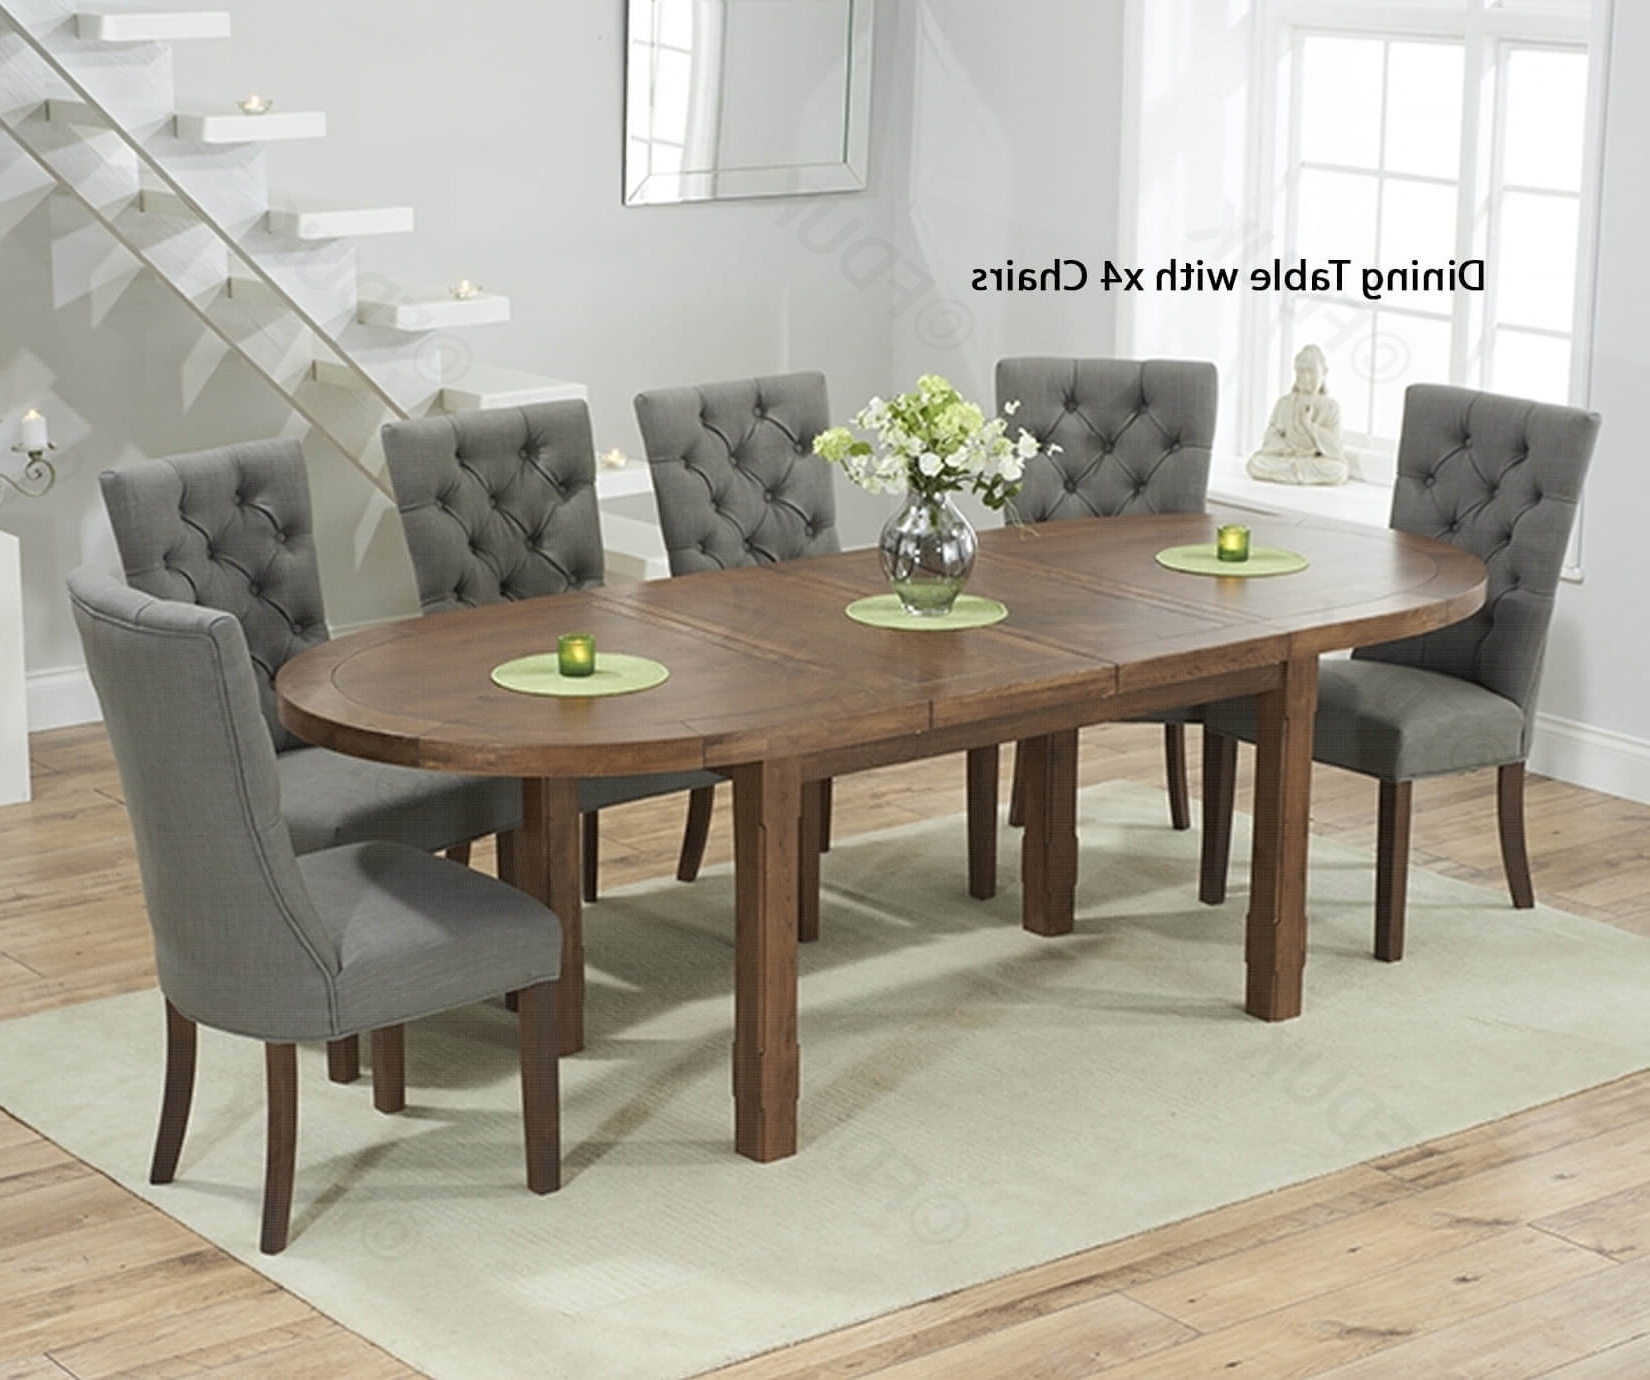 2018 Mark Harris Cheyenne Solid Dark Oak Dining Set – Oval Extending With Intended For Oval Oak Dining Tables And Chairs (View 14 of 25)